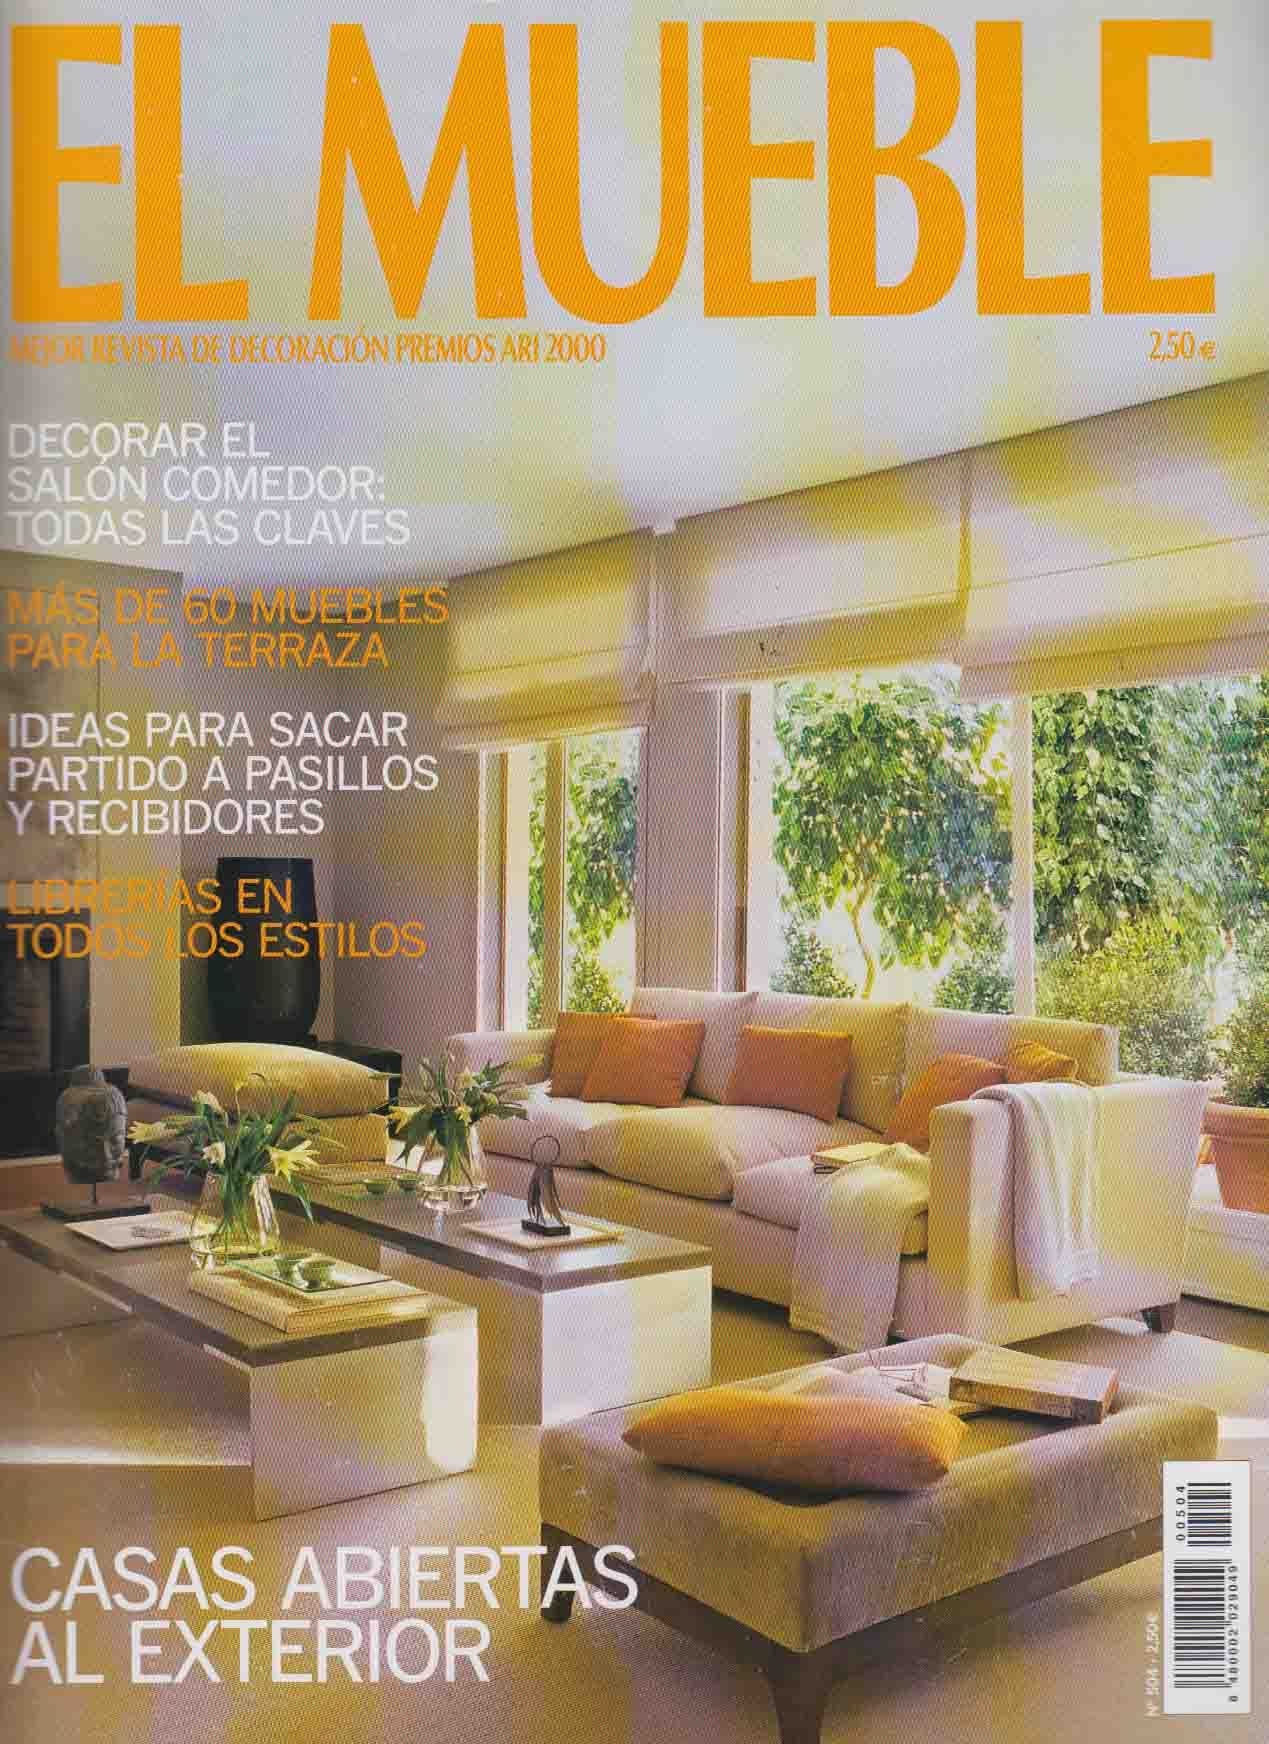 El mueble revista decoracion simple el mueble with el for El mueble decoracion